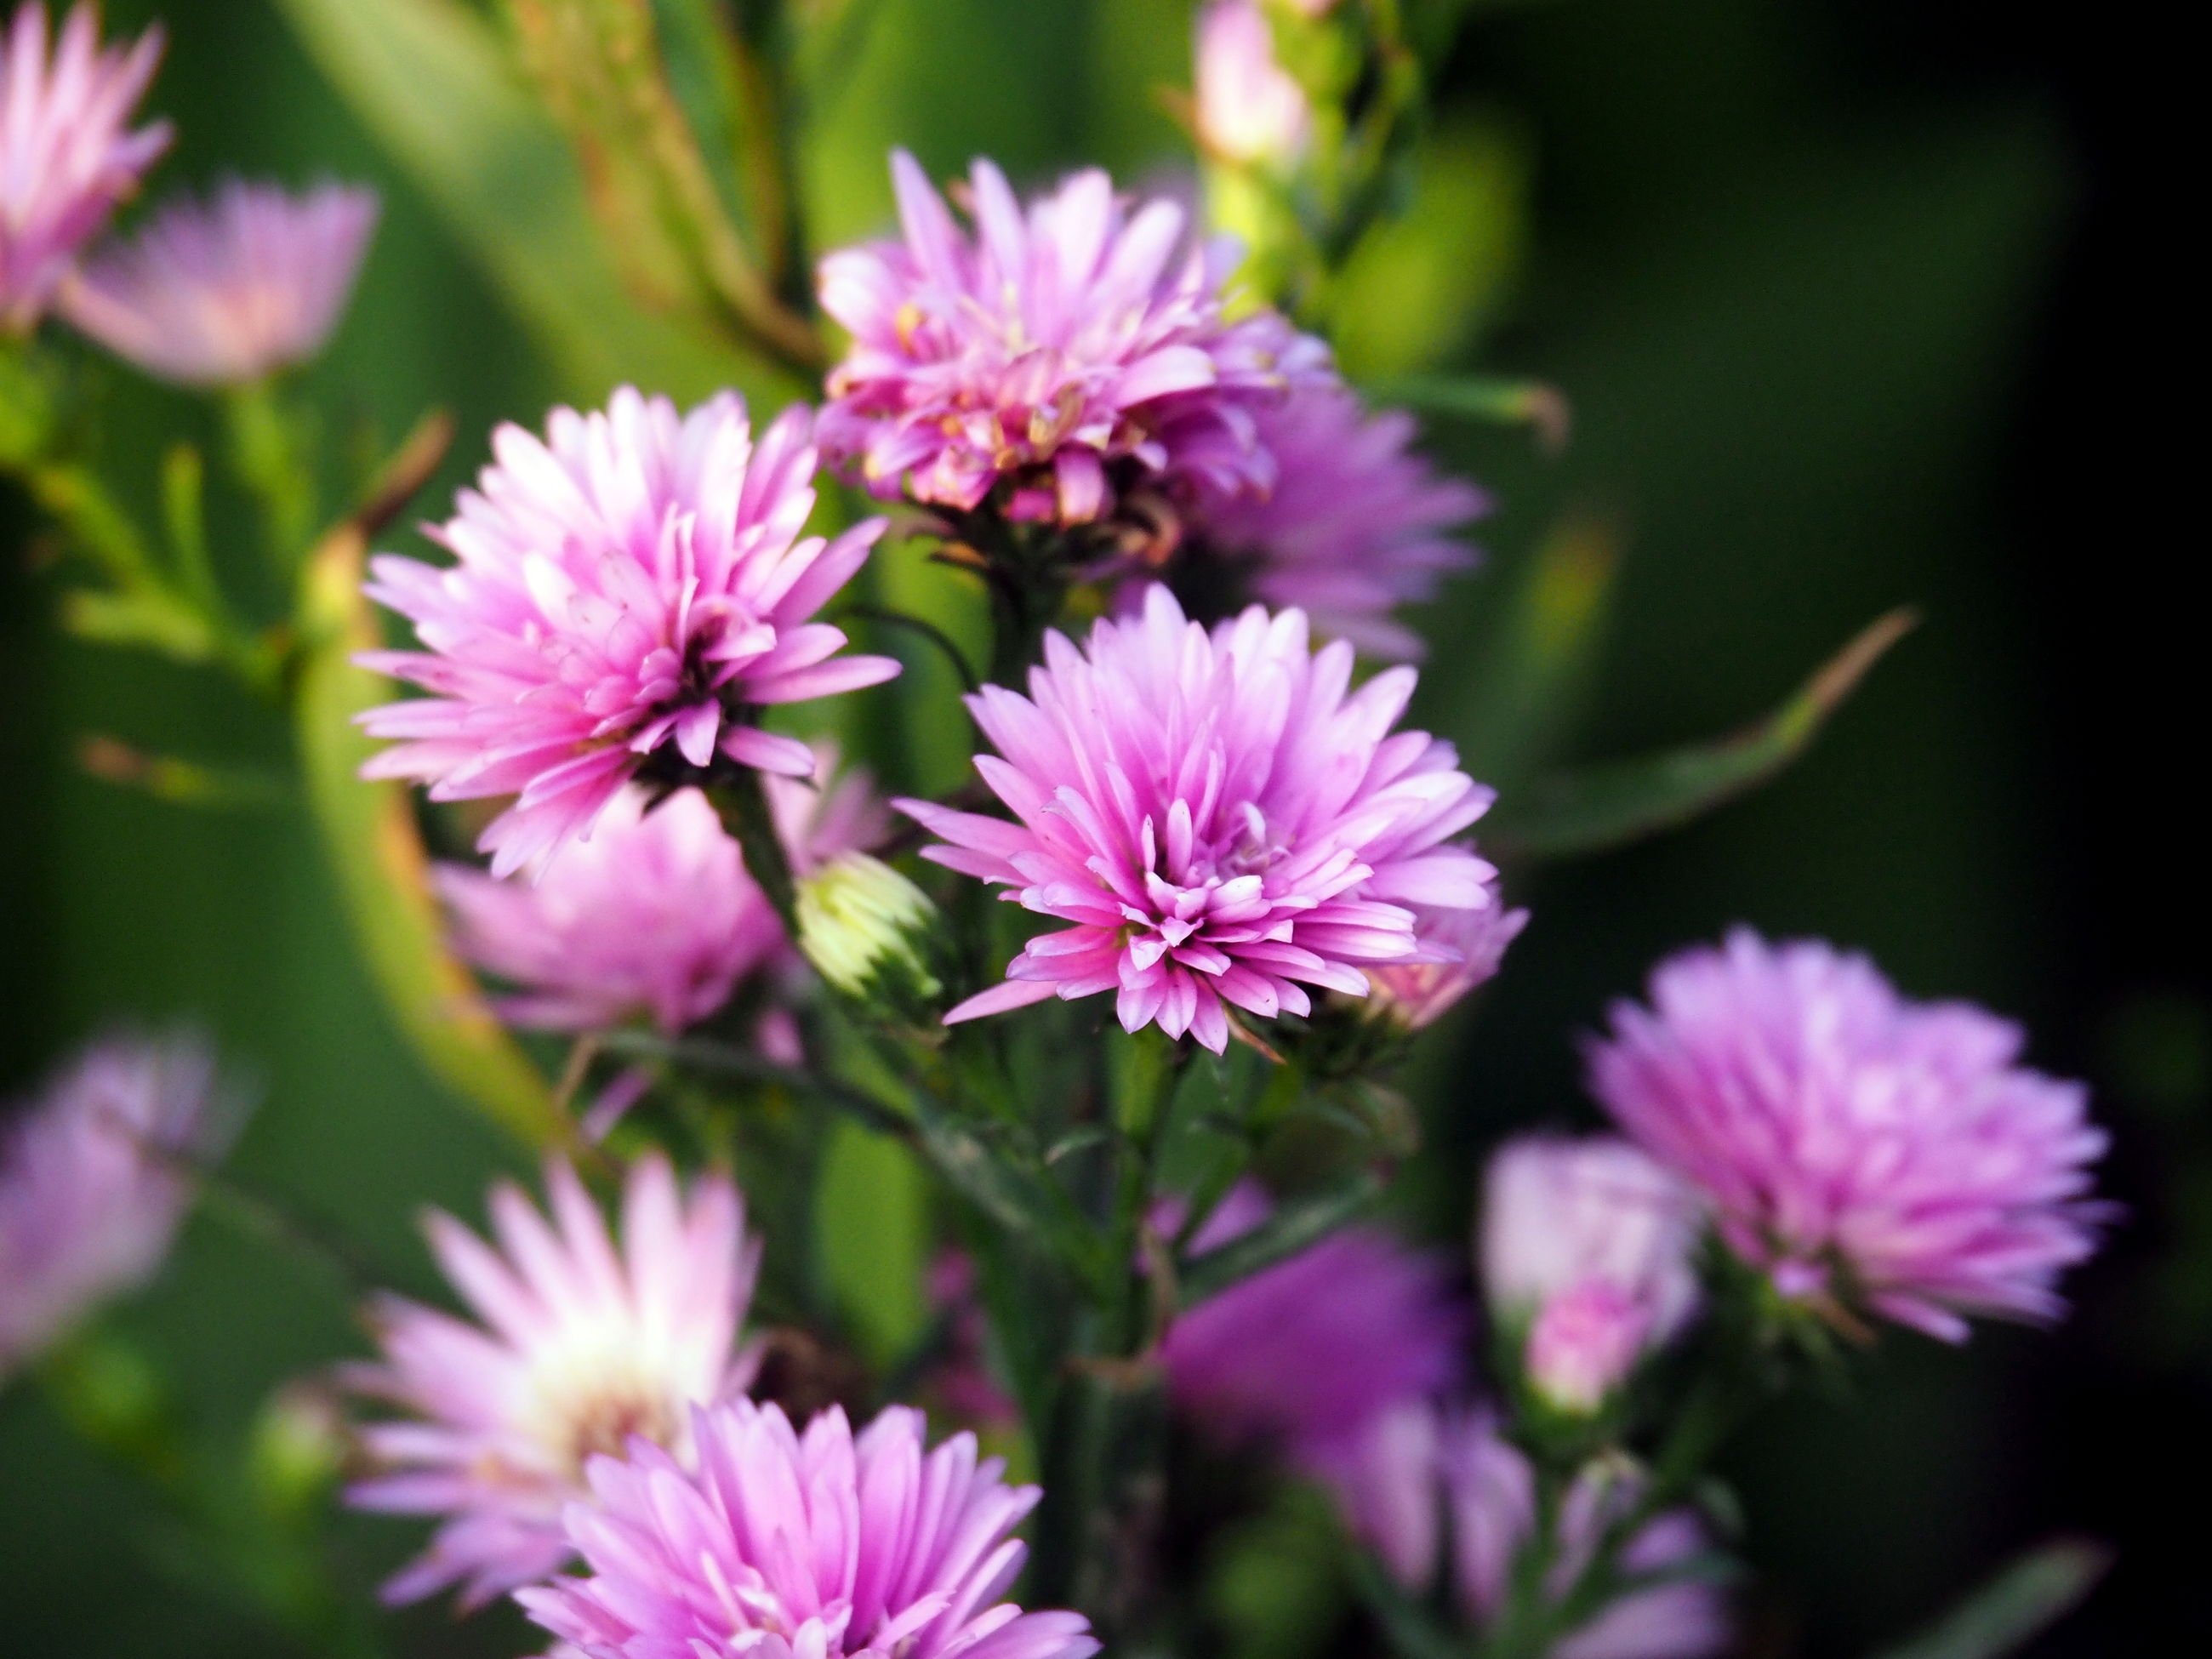 flower, freshness, pink color, petal, fragility, growth, beauty in nature, focus on foreground, close-up, flower head, purple, nature, plant, blooming, pink, selective focus, in bloom, outdoors, day, park - man made space